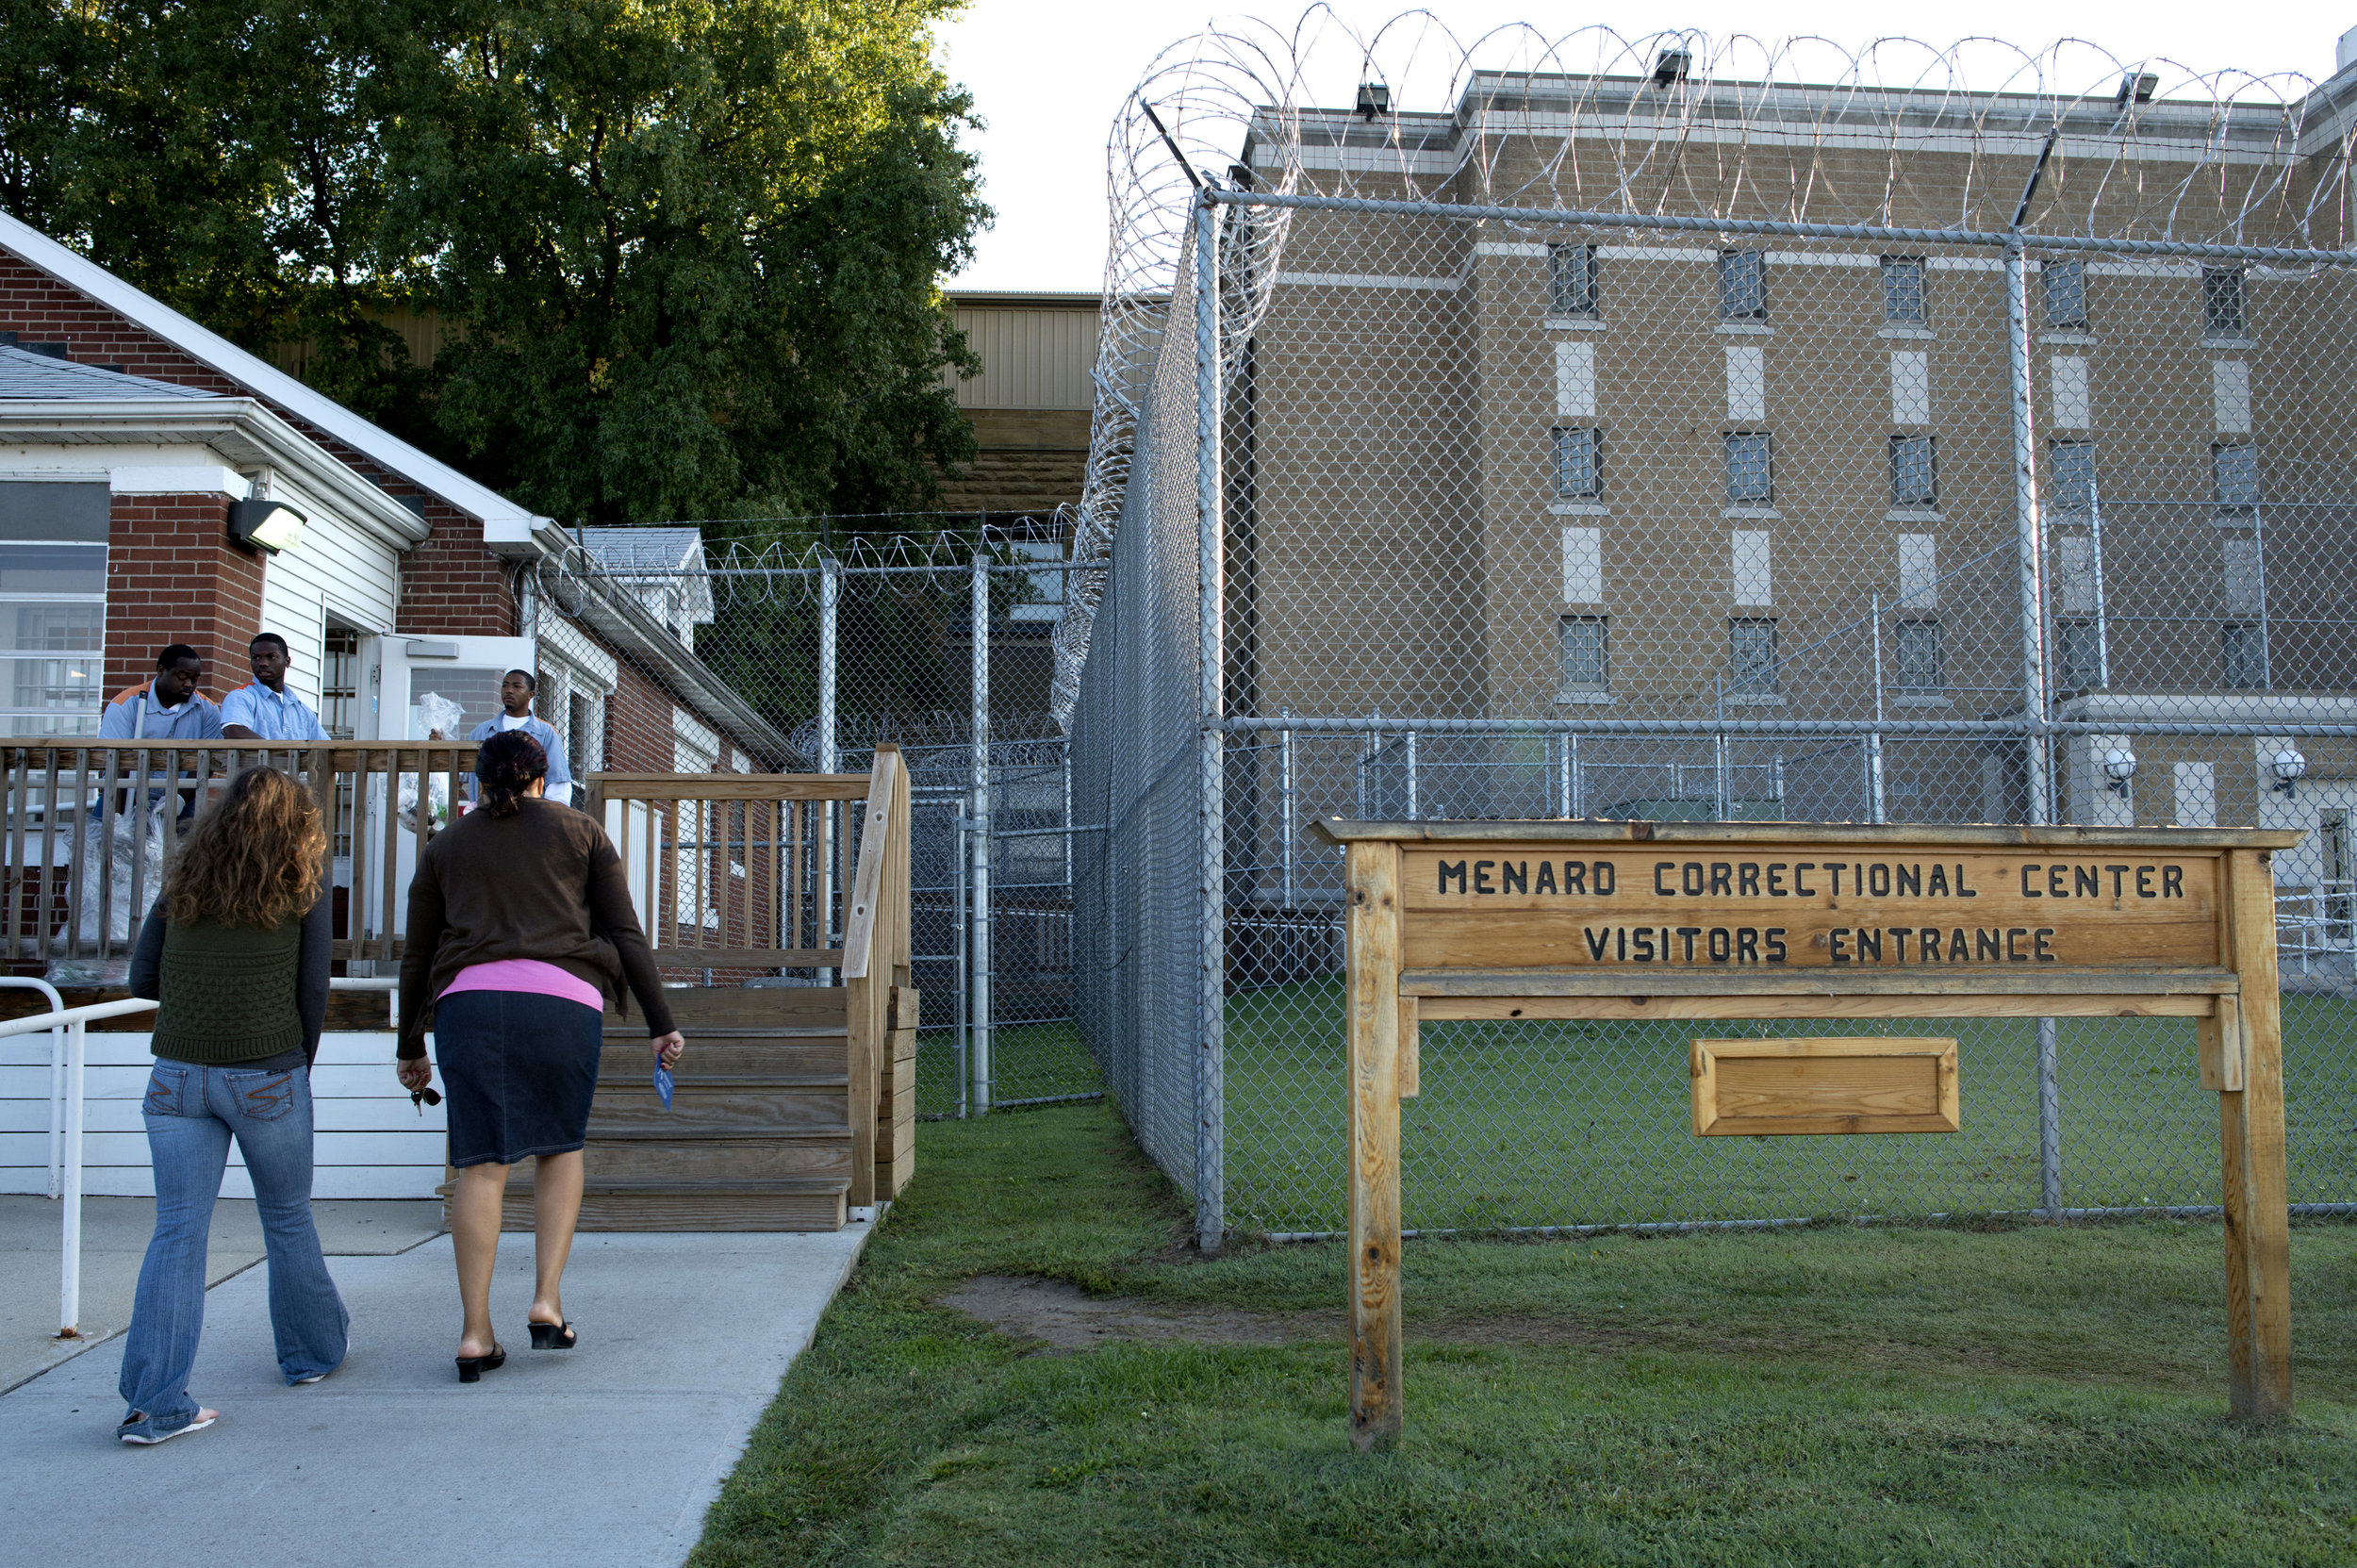 Kellie enters the prison to visit Anthony with Debra Kennedy, who is there to see a friend.